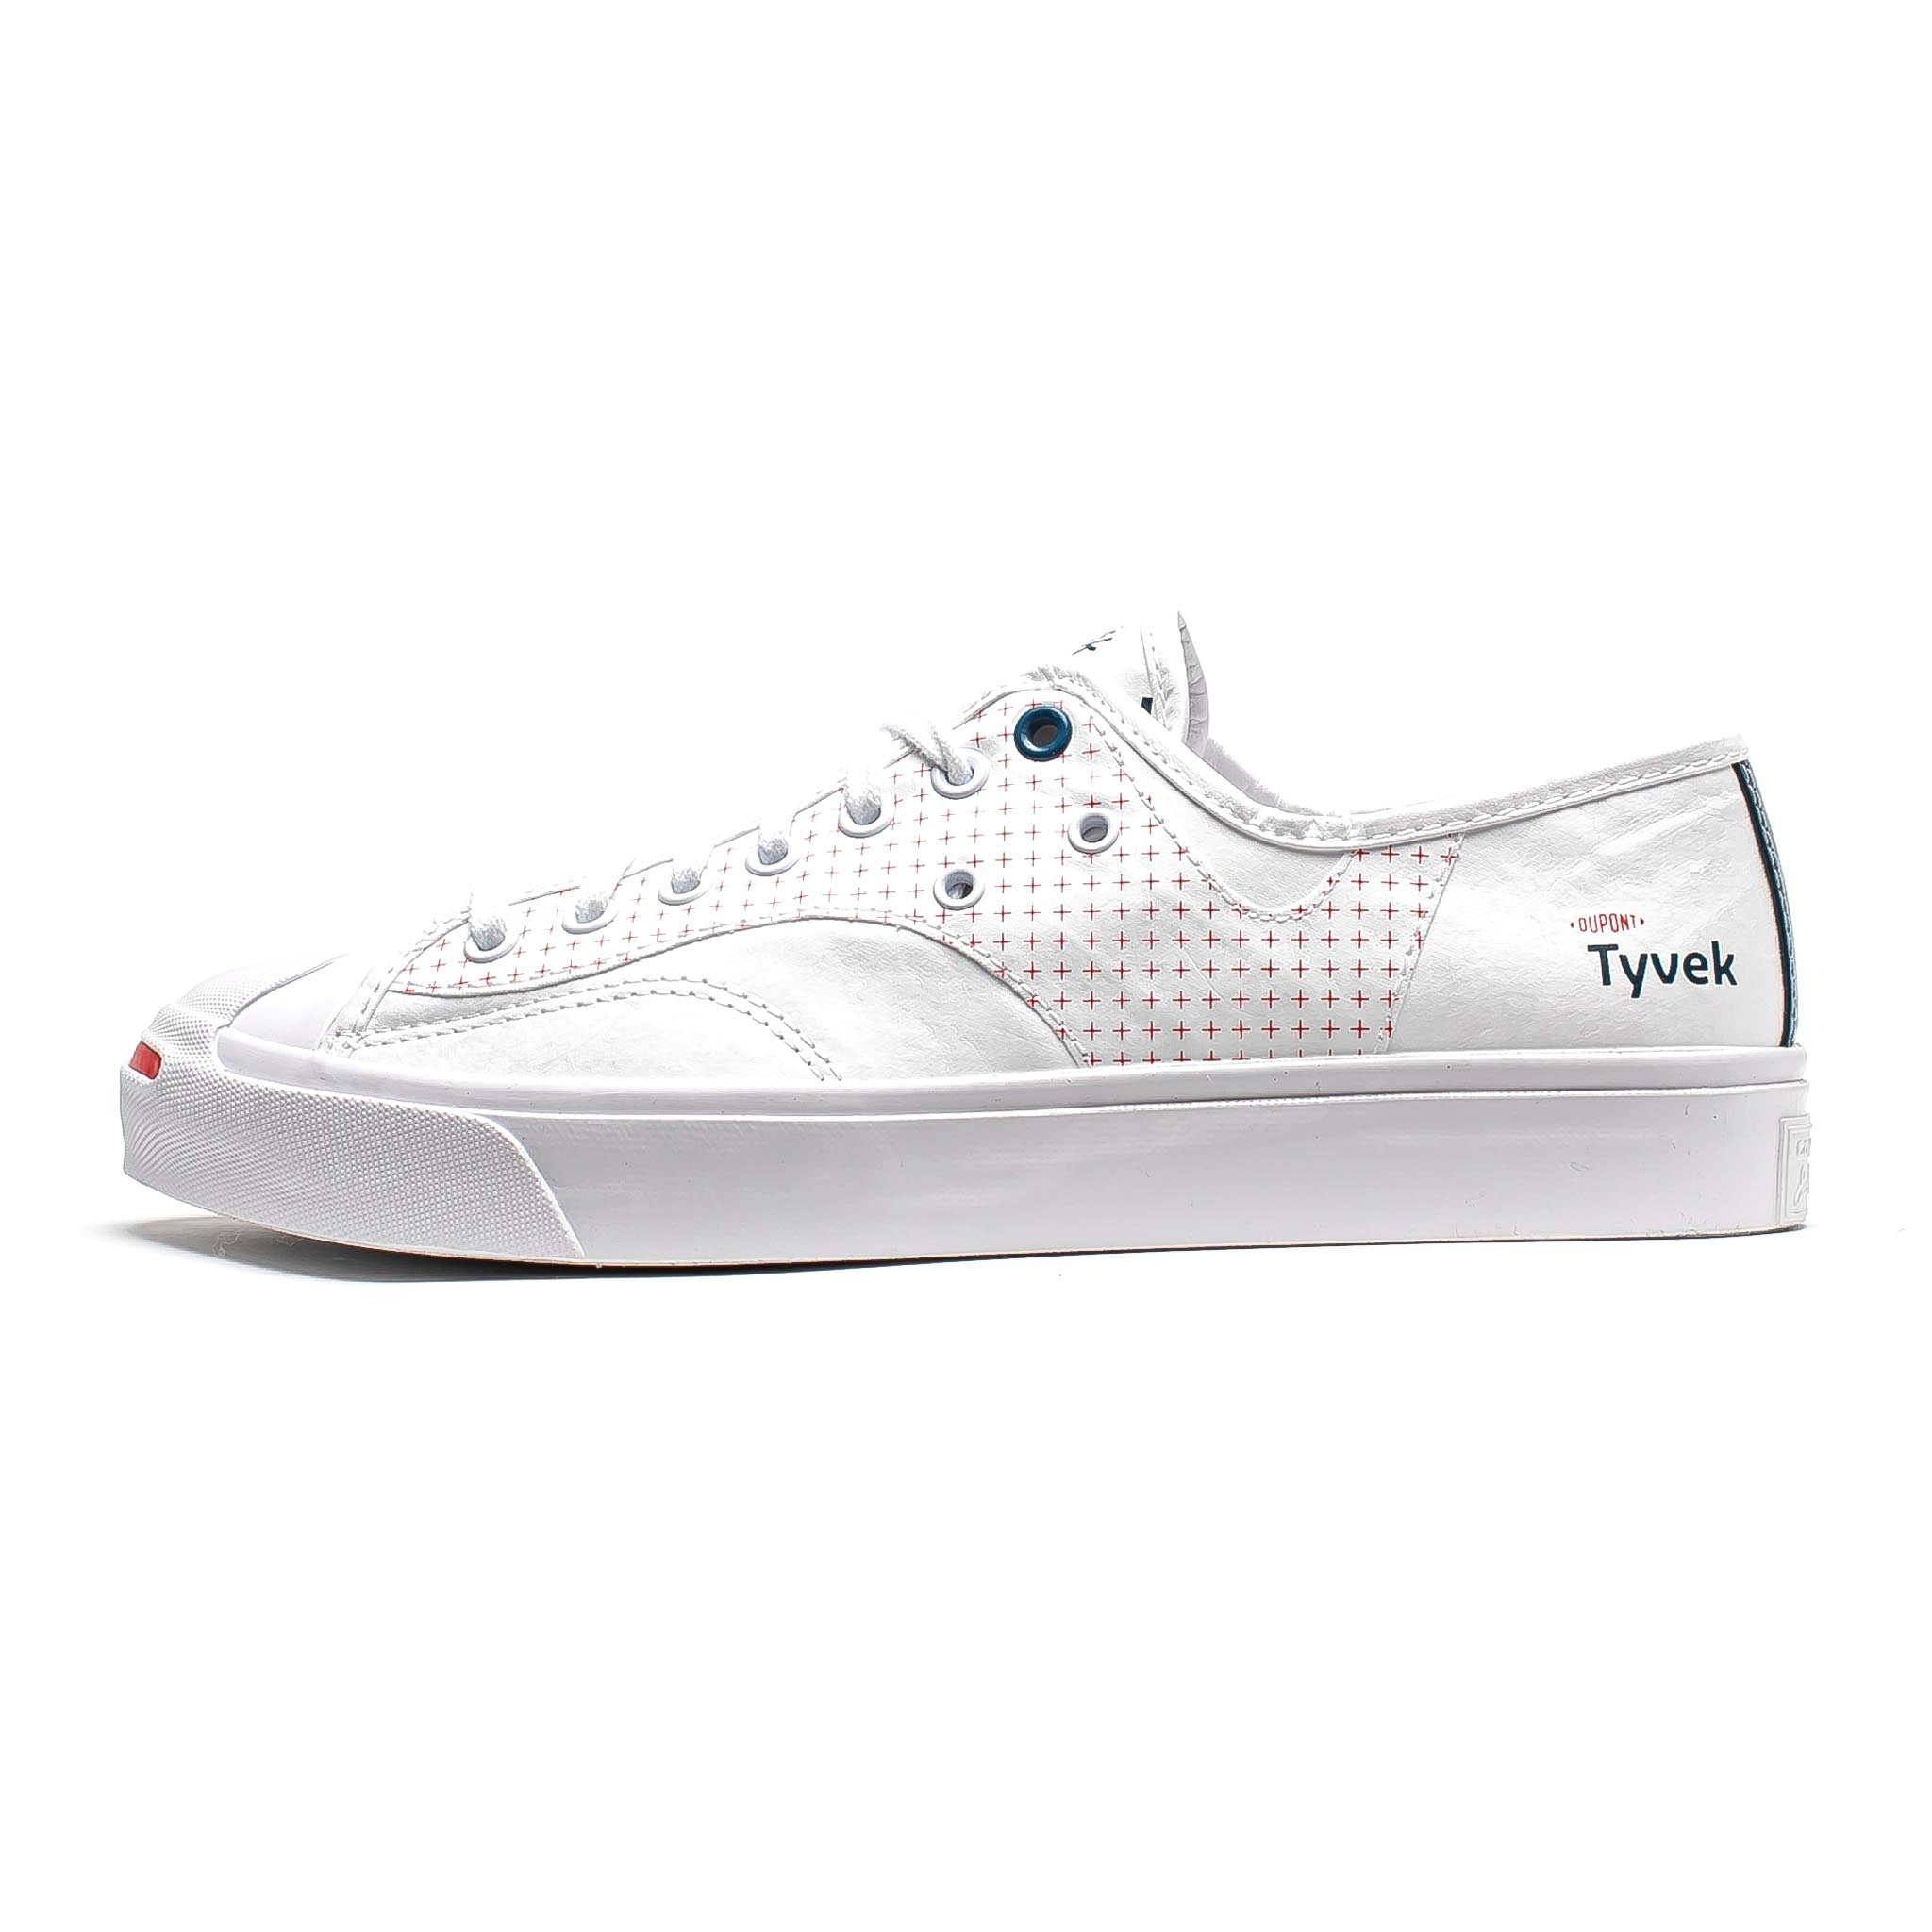 Converse x Tyvek Jack Purcell Rally White